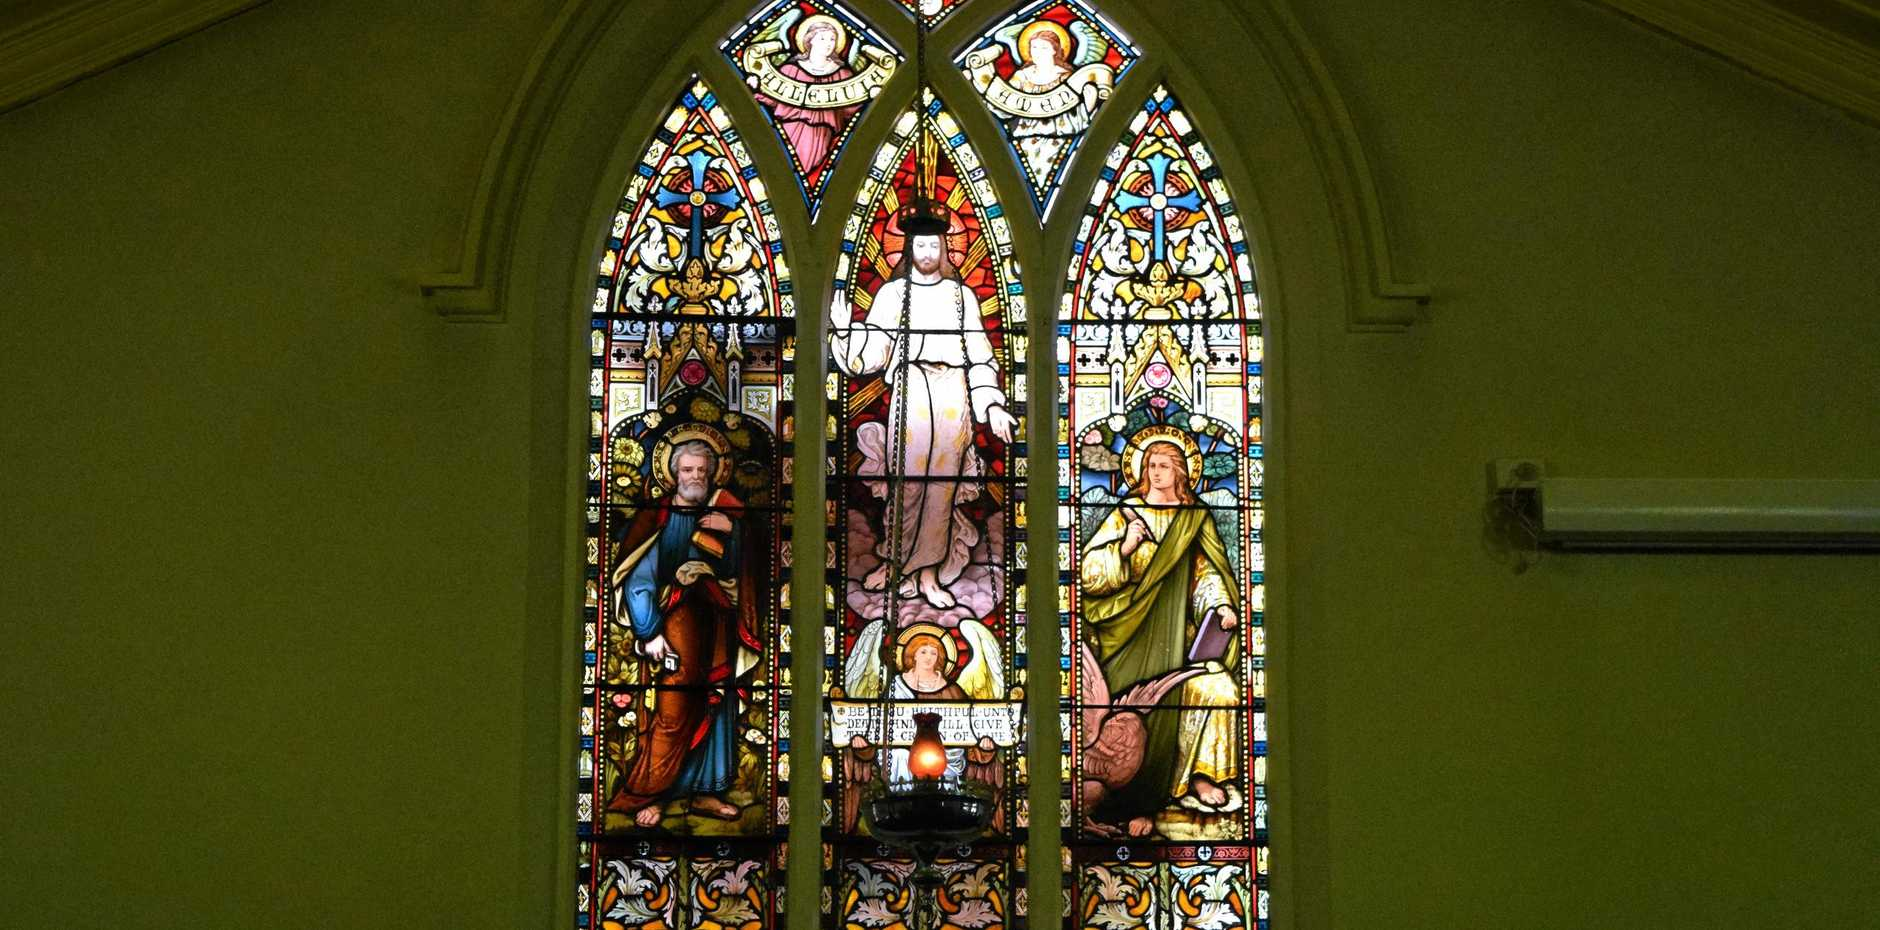 WINDOW: The Great Easter Window replaced after being smashed nearly two years ago.